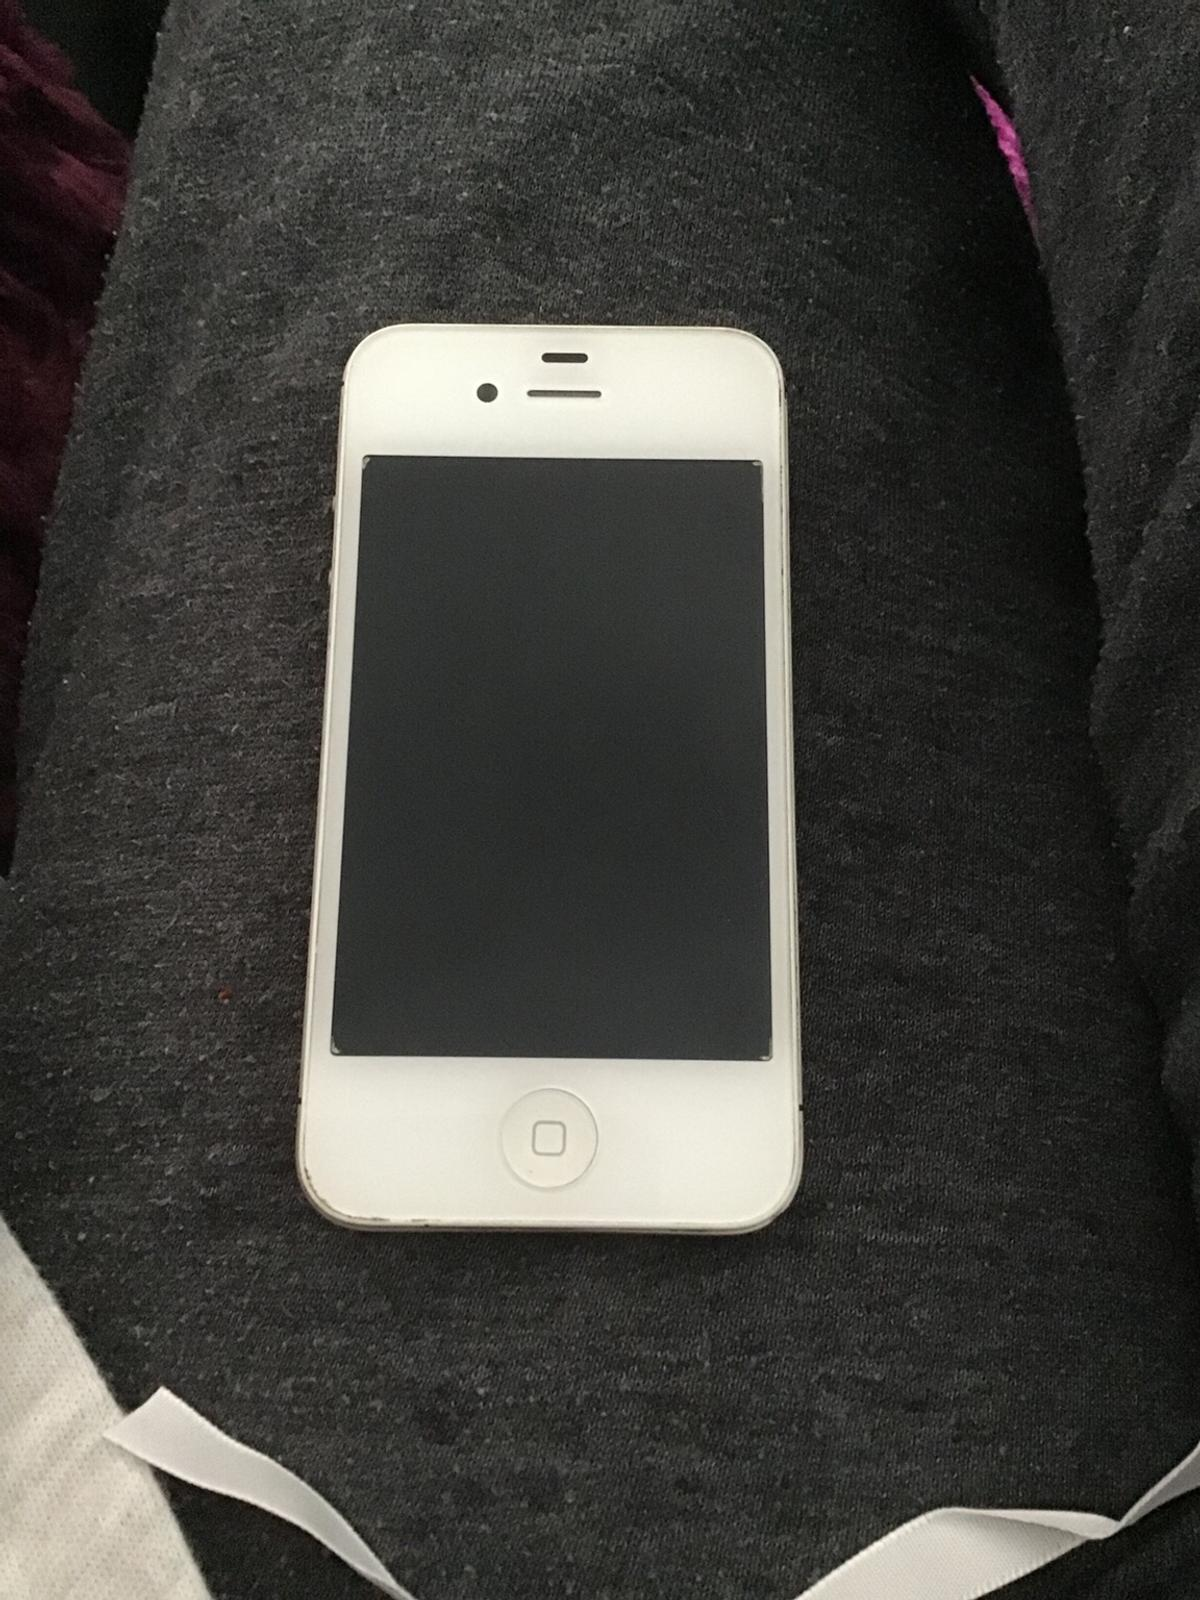 iPhone 4s in DL1 Darlington for £20.00 for sale | Shpock